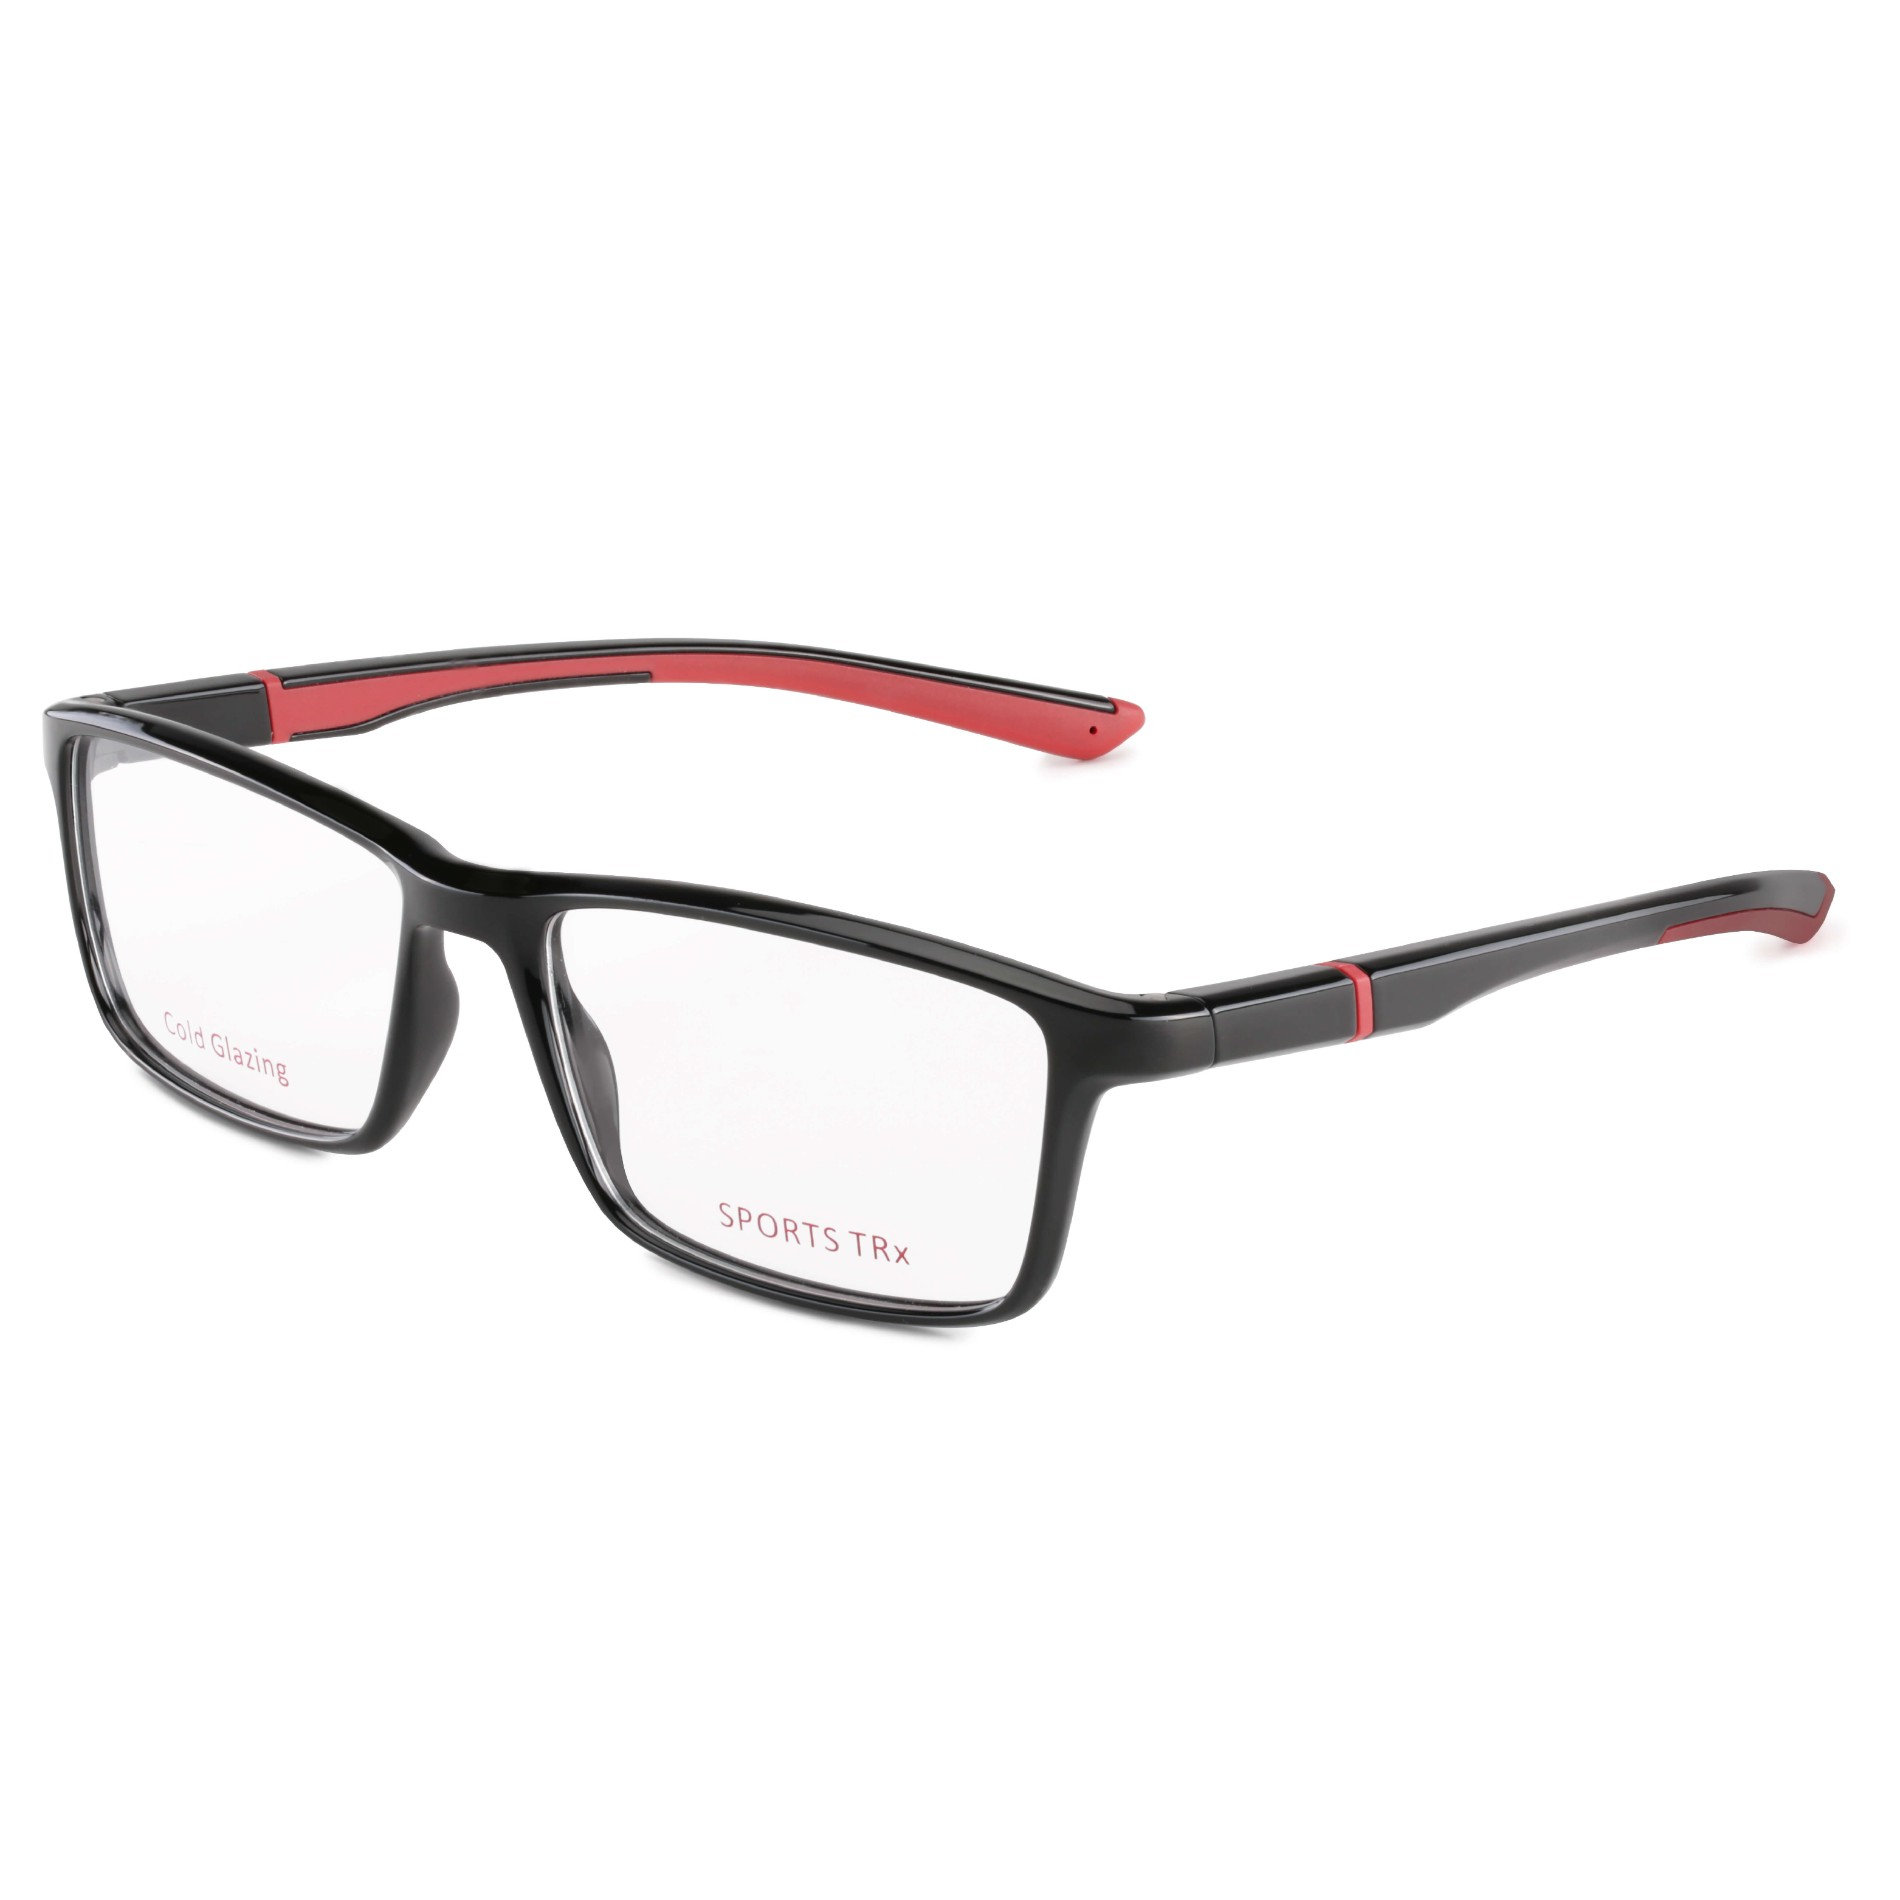 Sports TR90 Glasses High Quality Outdoor Prescription Eyeglasses Frames with Replaceable Face Shield Manufacturers, Sports TR90 Glasses High Quality Outdoor Prescription Eyeglasses Frames with Replaceable Face Shield Factory, Supply Sports TR90 Glasses High Quality Outdoor Prescription Eyeglasses Frames with Replaceable Face Shield